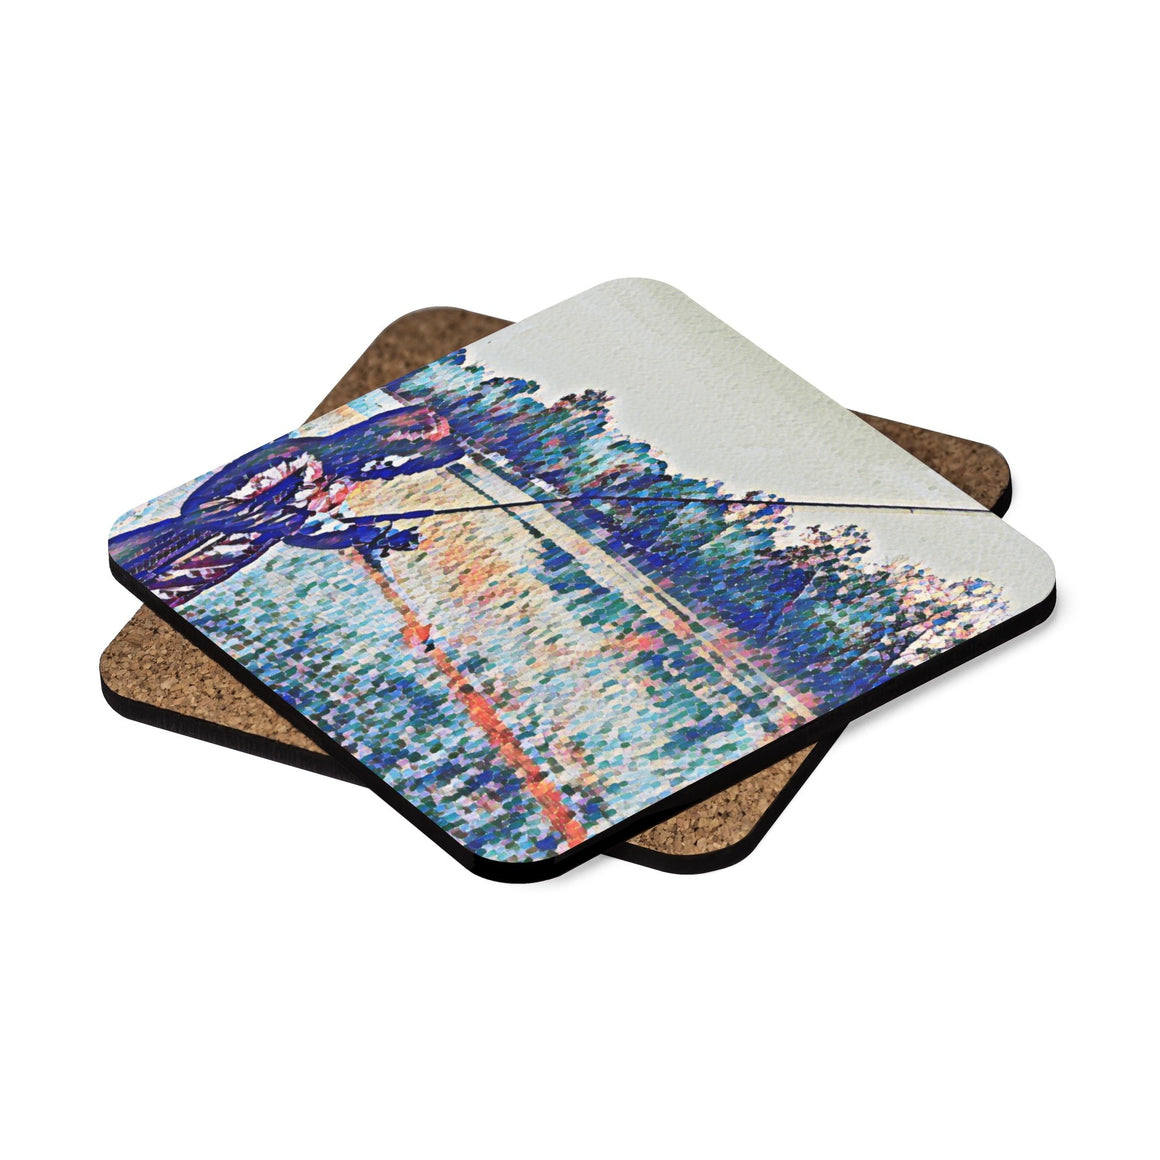 Levi Thang Fishing Design 1 Square Hardboard Coaster Set - 4pcs - I Am A Dreamer